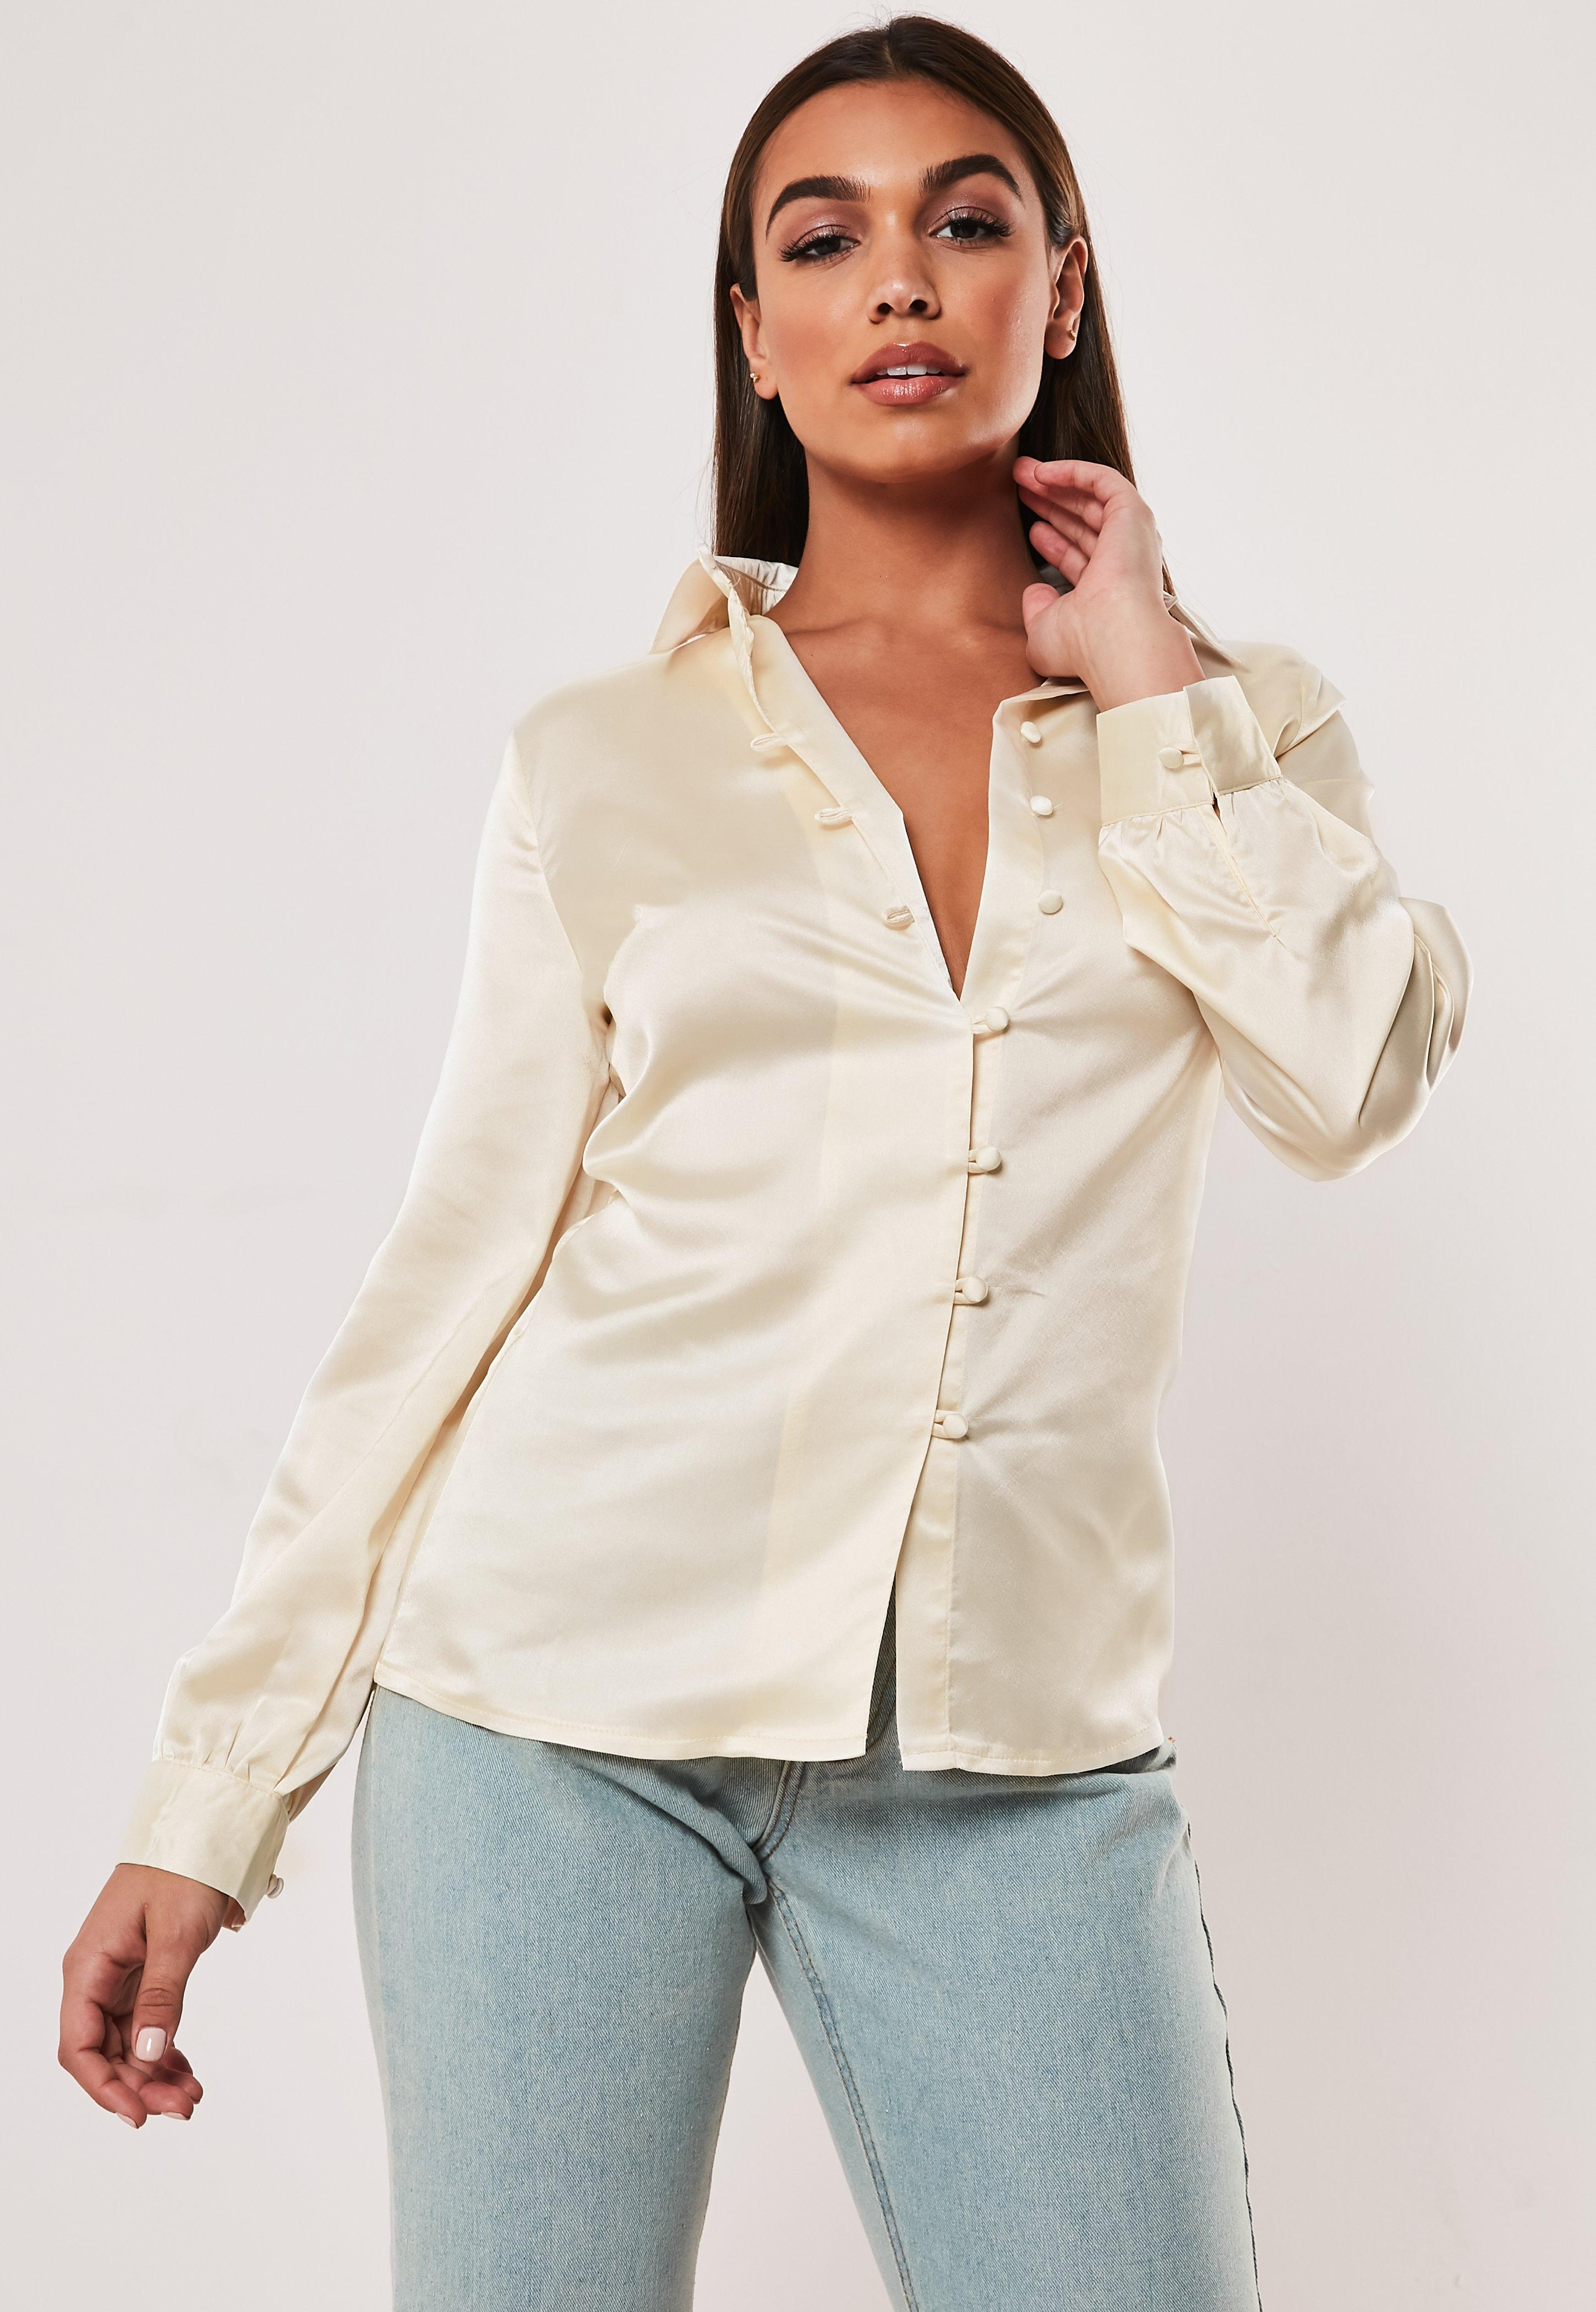 ef996811aeeab3 Satin Tops | Shop Silky Tops - Missguided